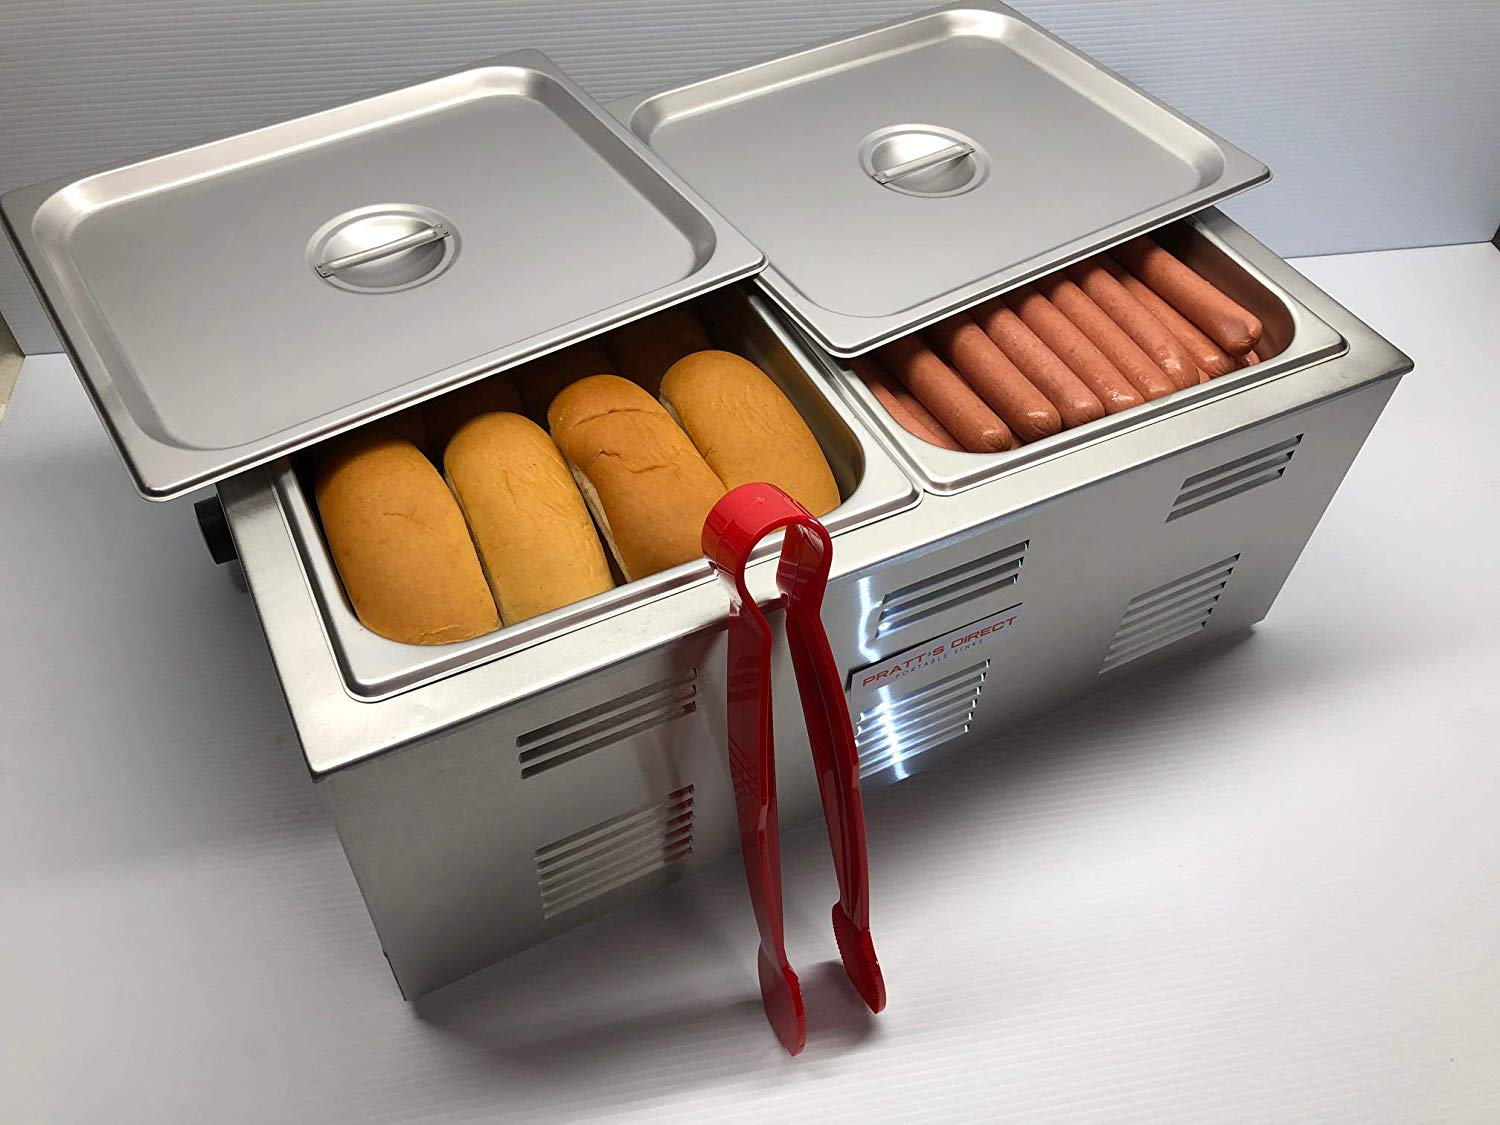 Pratts Direct Commercial Bun Warmer And Hot Dog Cooker